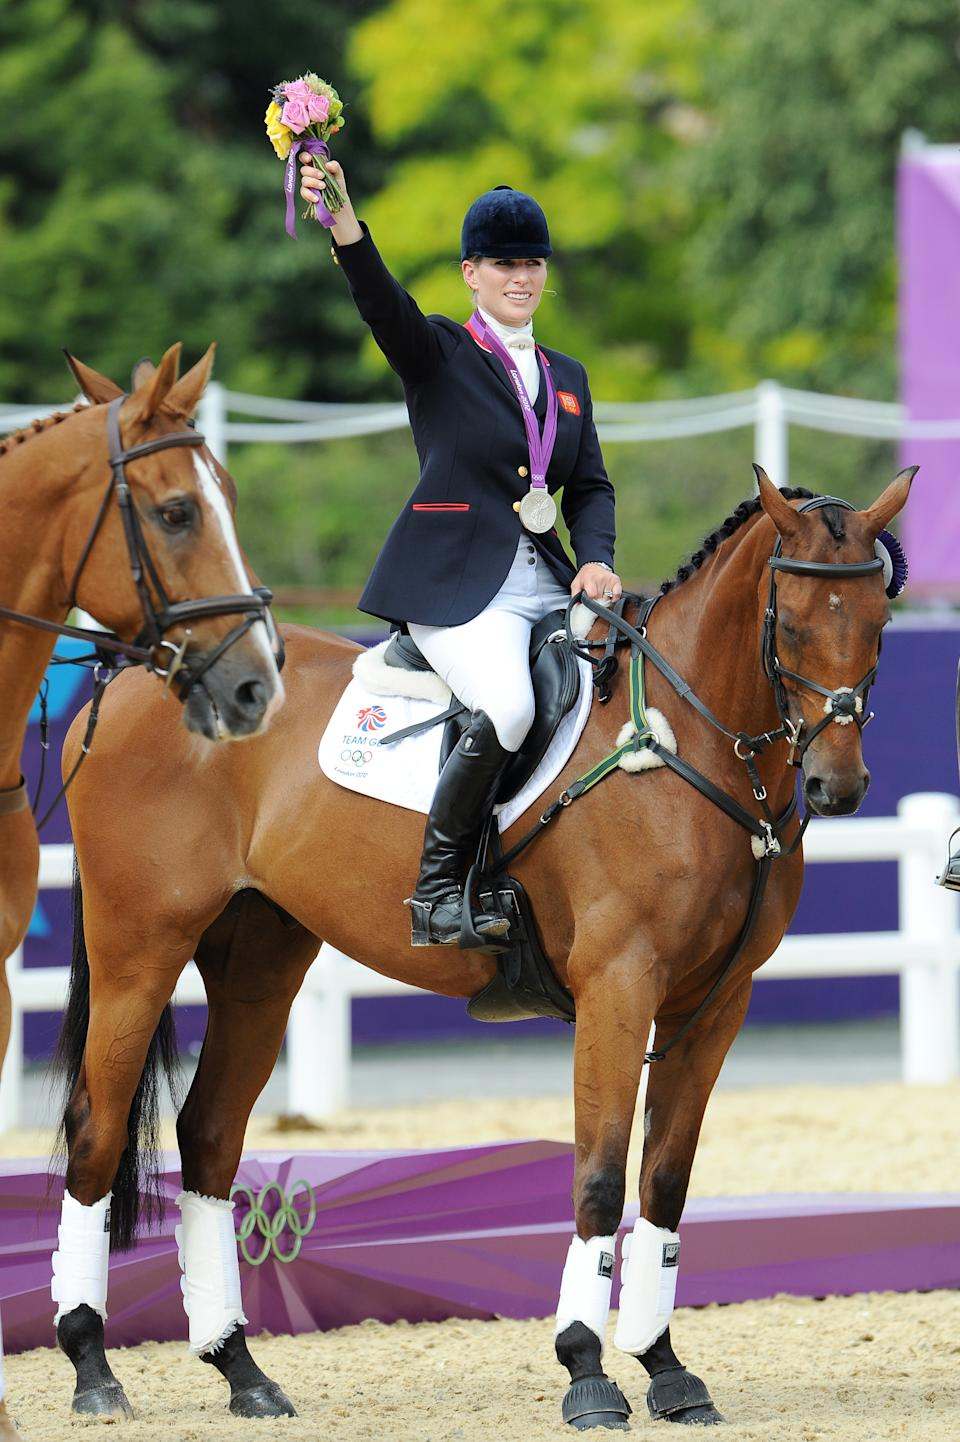 Zara Phillips holds up flowers at the Show Jumping Eventing Equestrian on Day 4 of the London 2012 Olympic Games at Greenwich Park on July 31, 2012 in London, England.